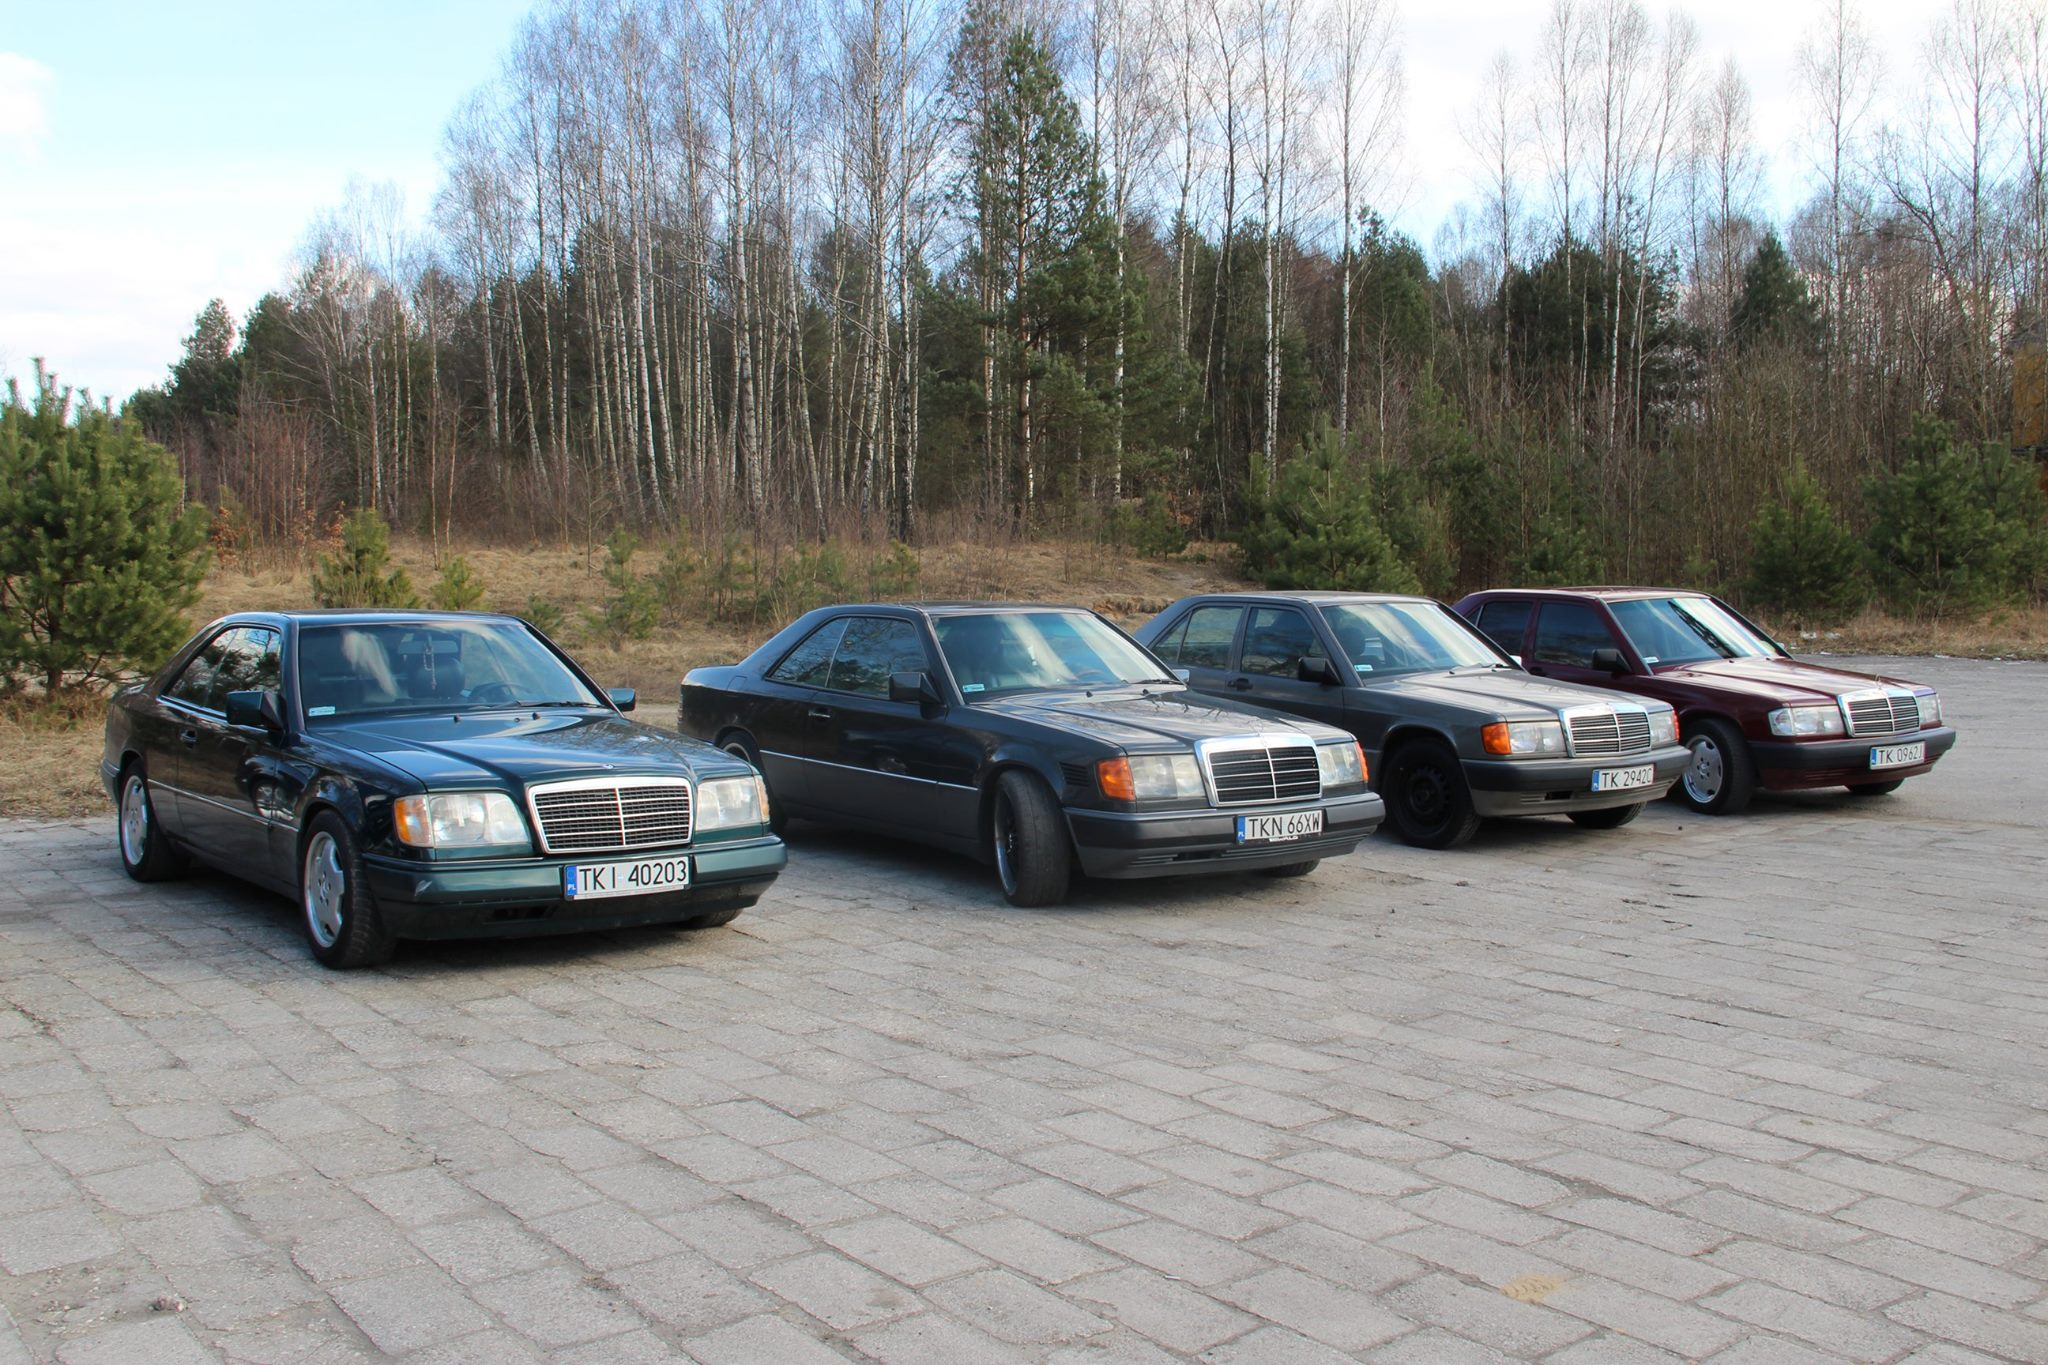 http://124coupe.pl/hosting/images/15ueu.jpg